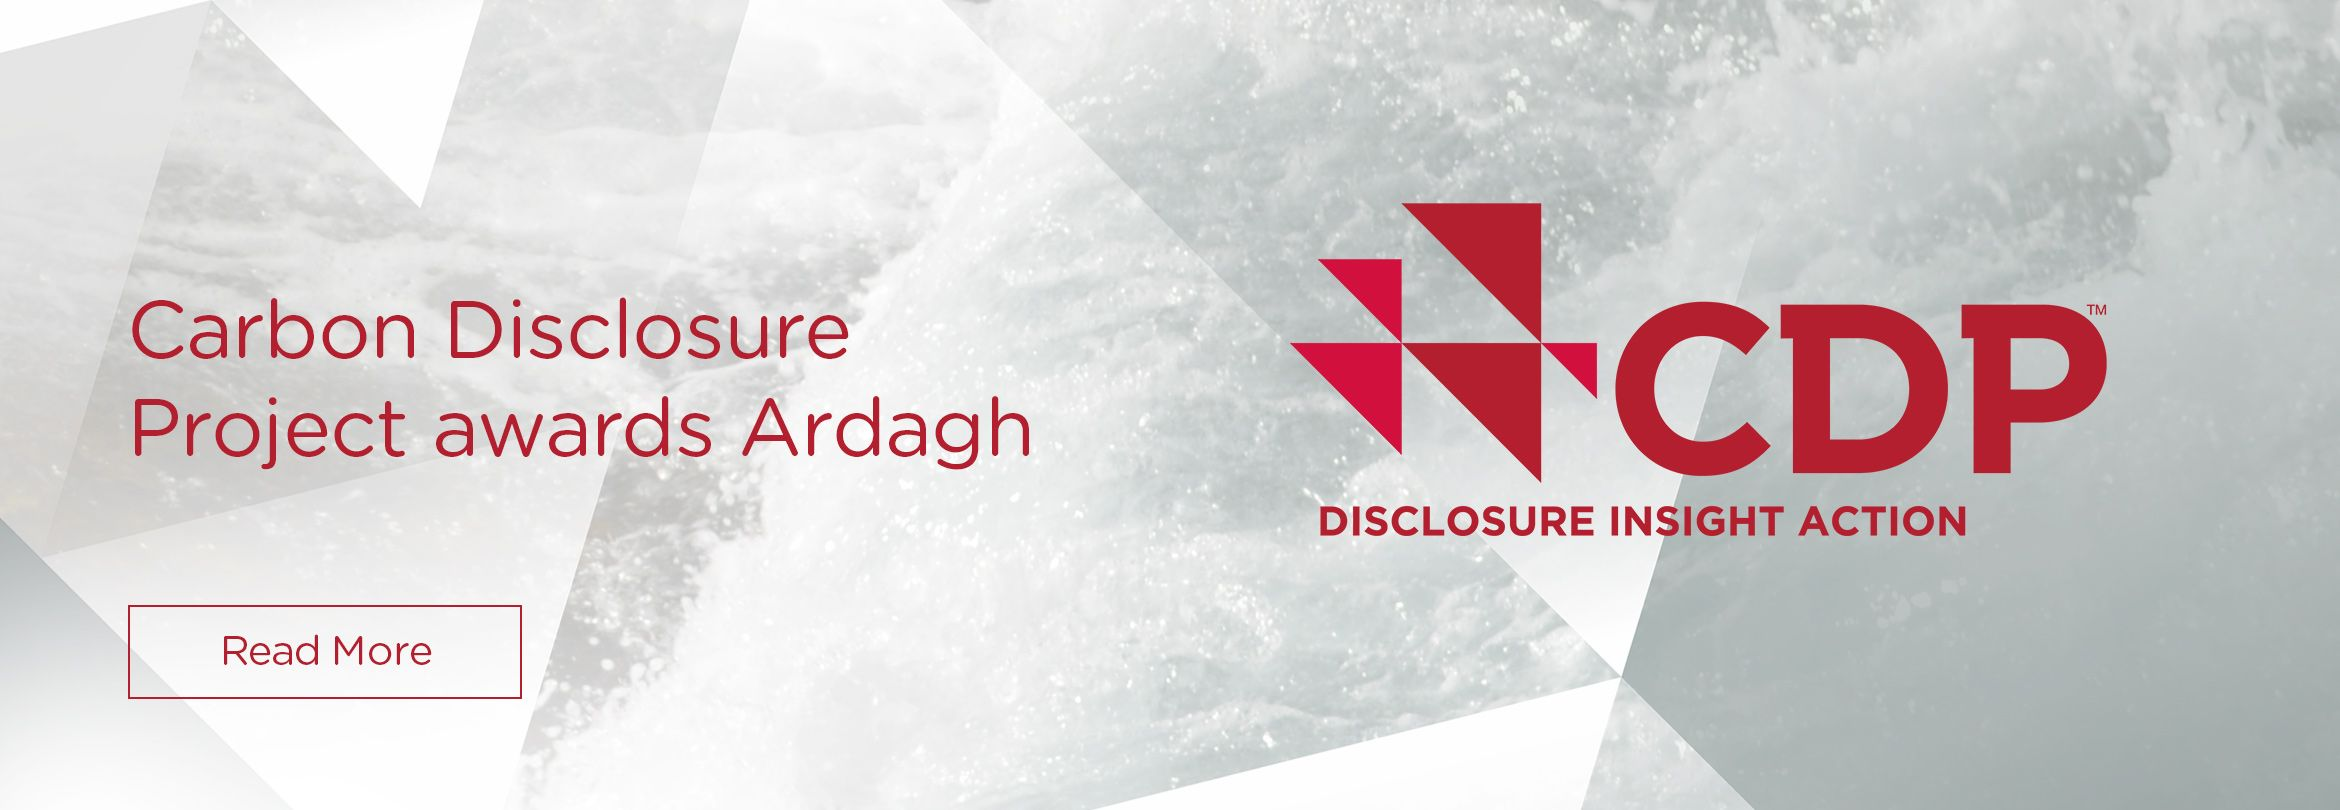 Carbon Disclosure Project awards Ardagh